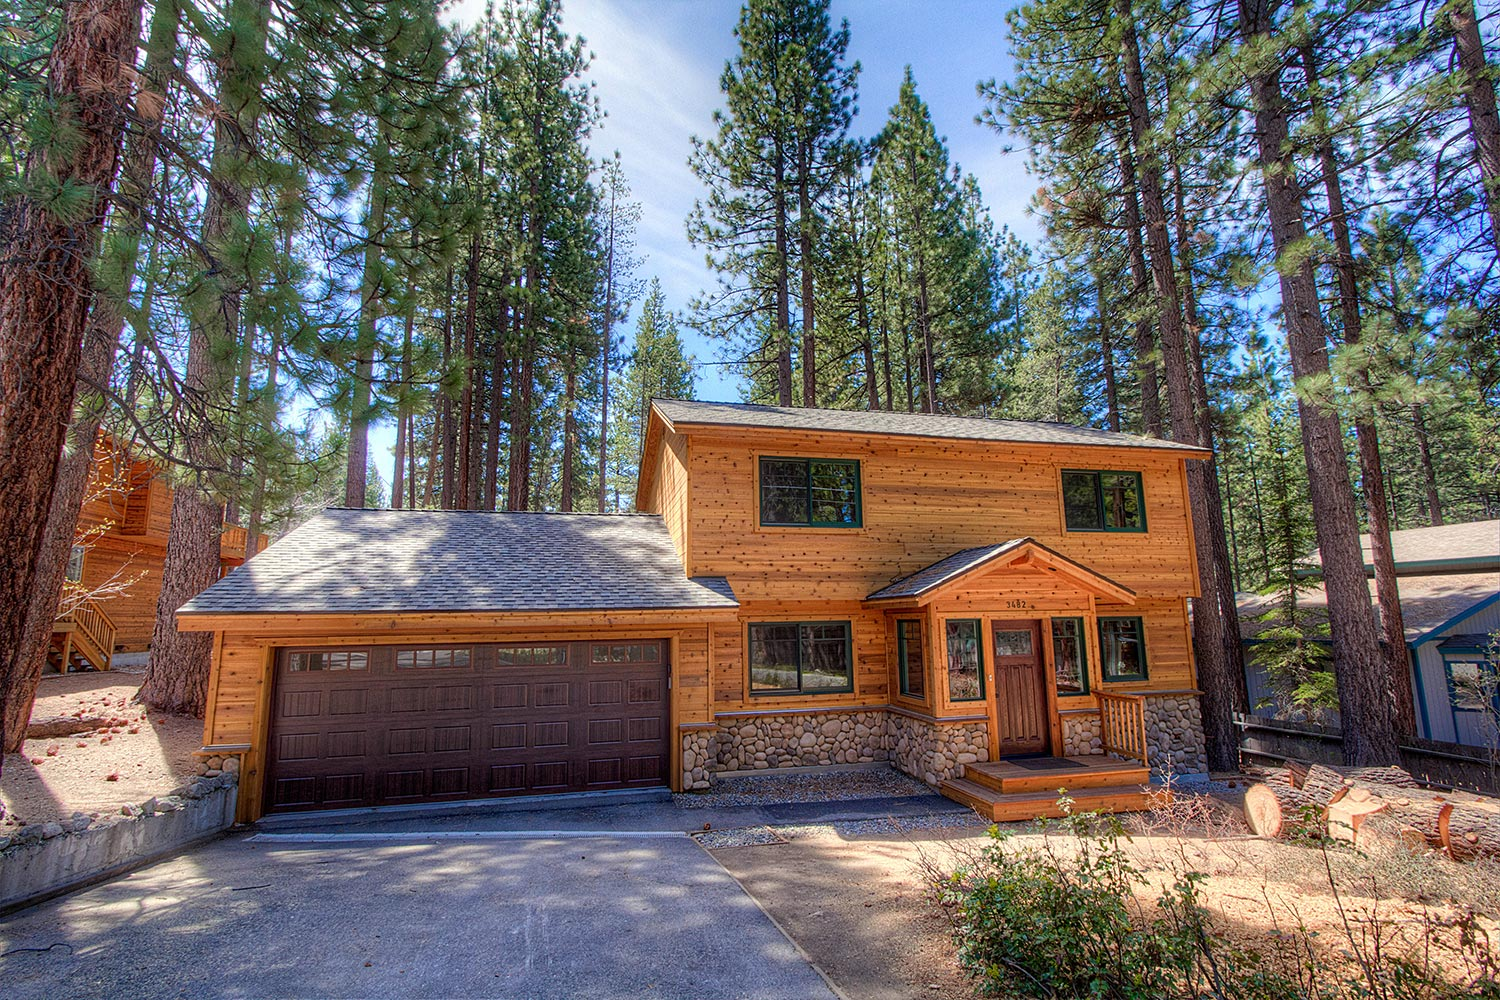 house smallhousebliss in cabins cheap gallery log tahoe small via cabin lake bliss